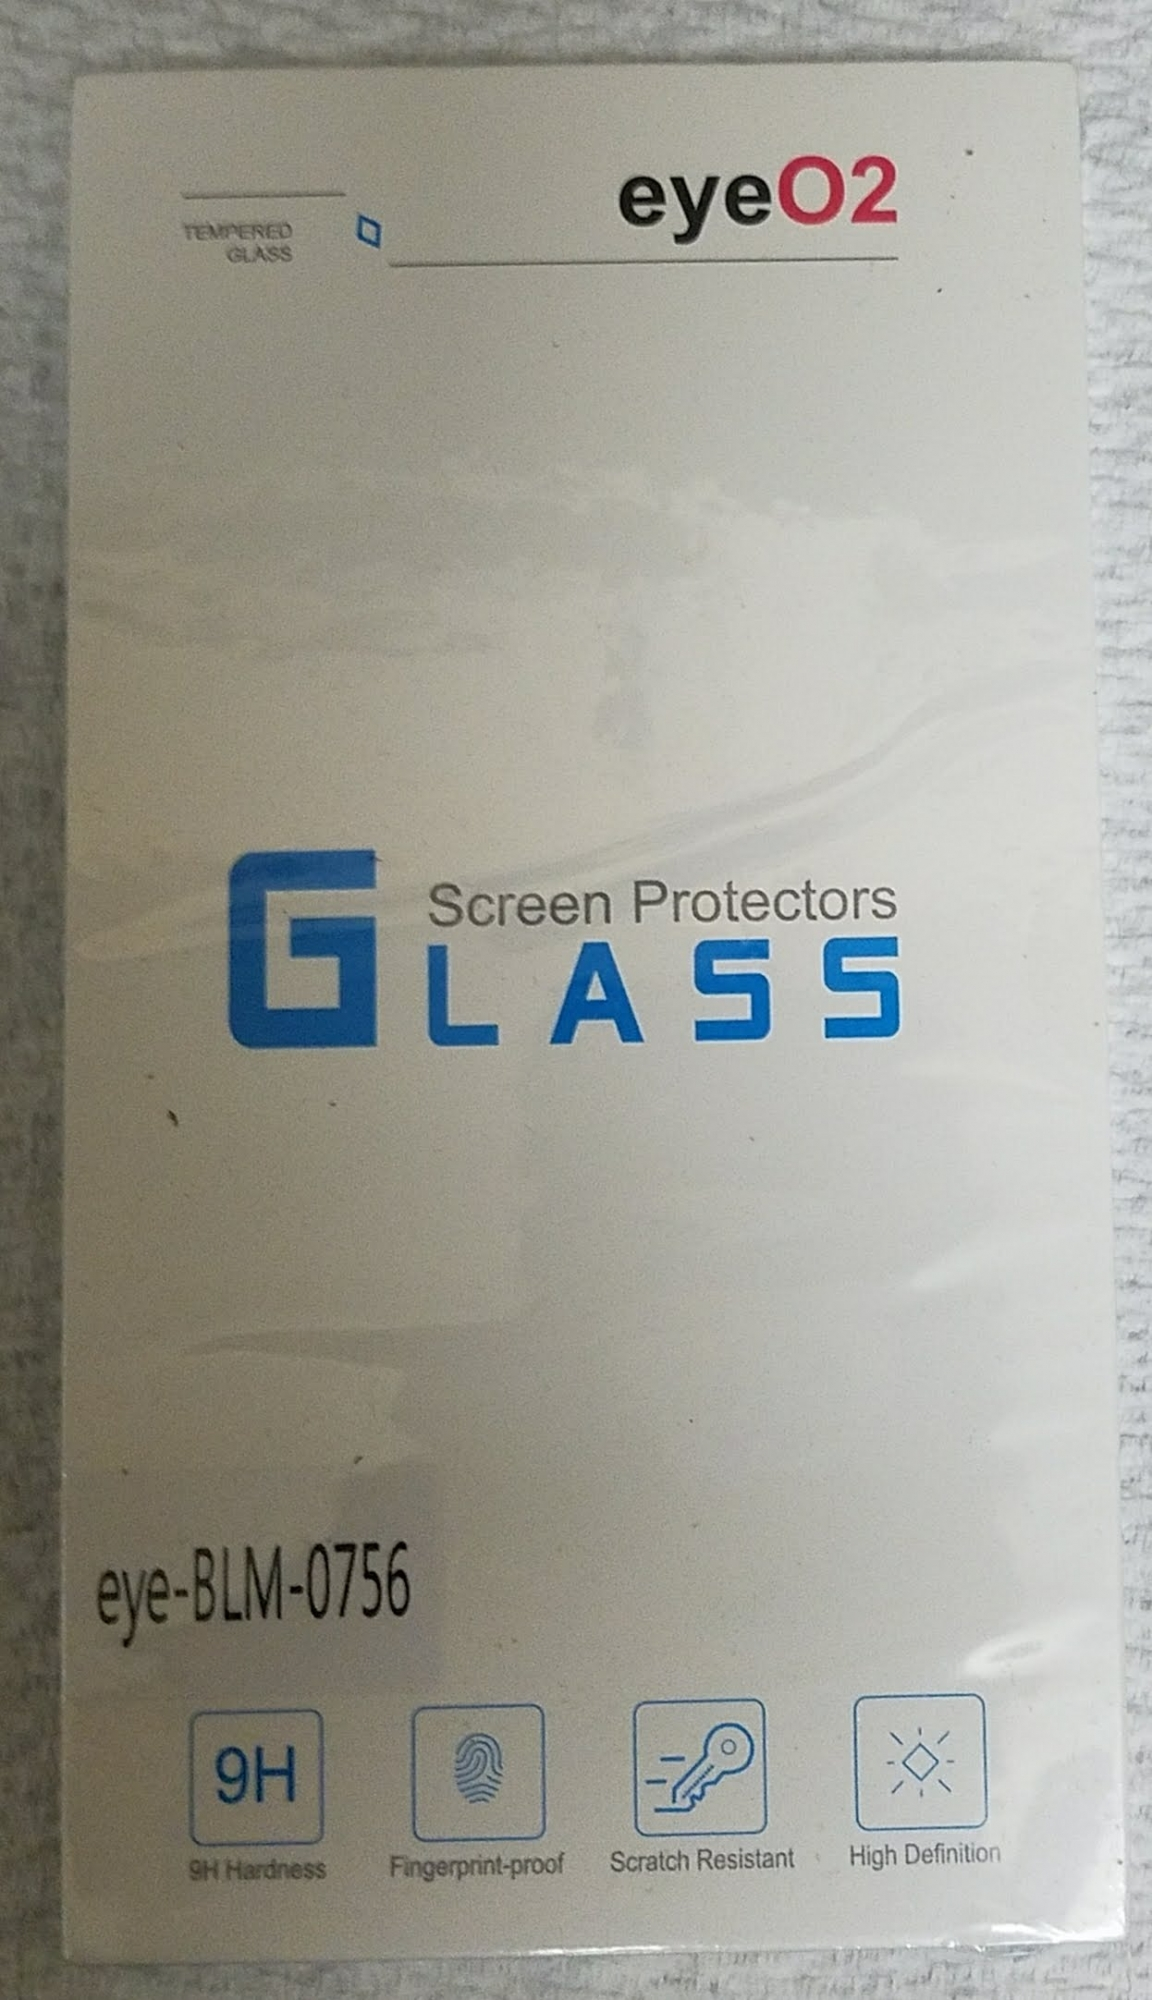 Screen Protector - Right Here